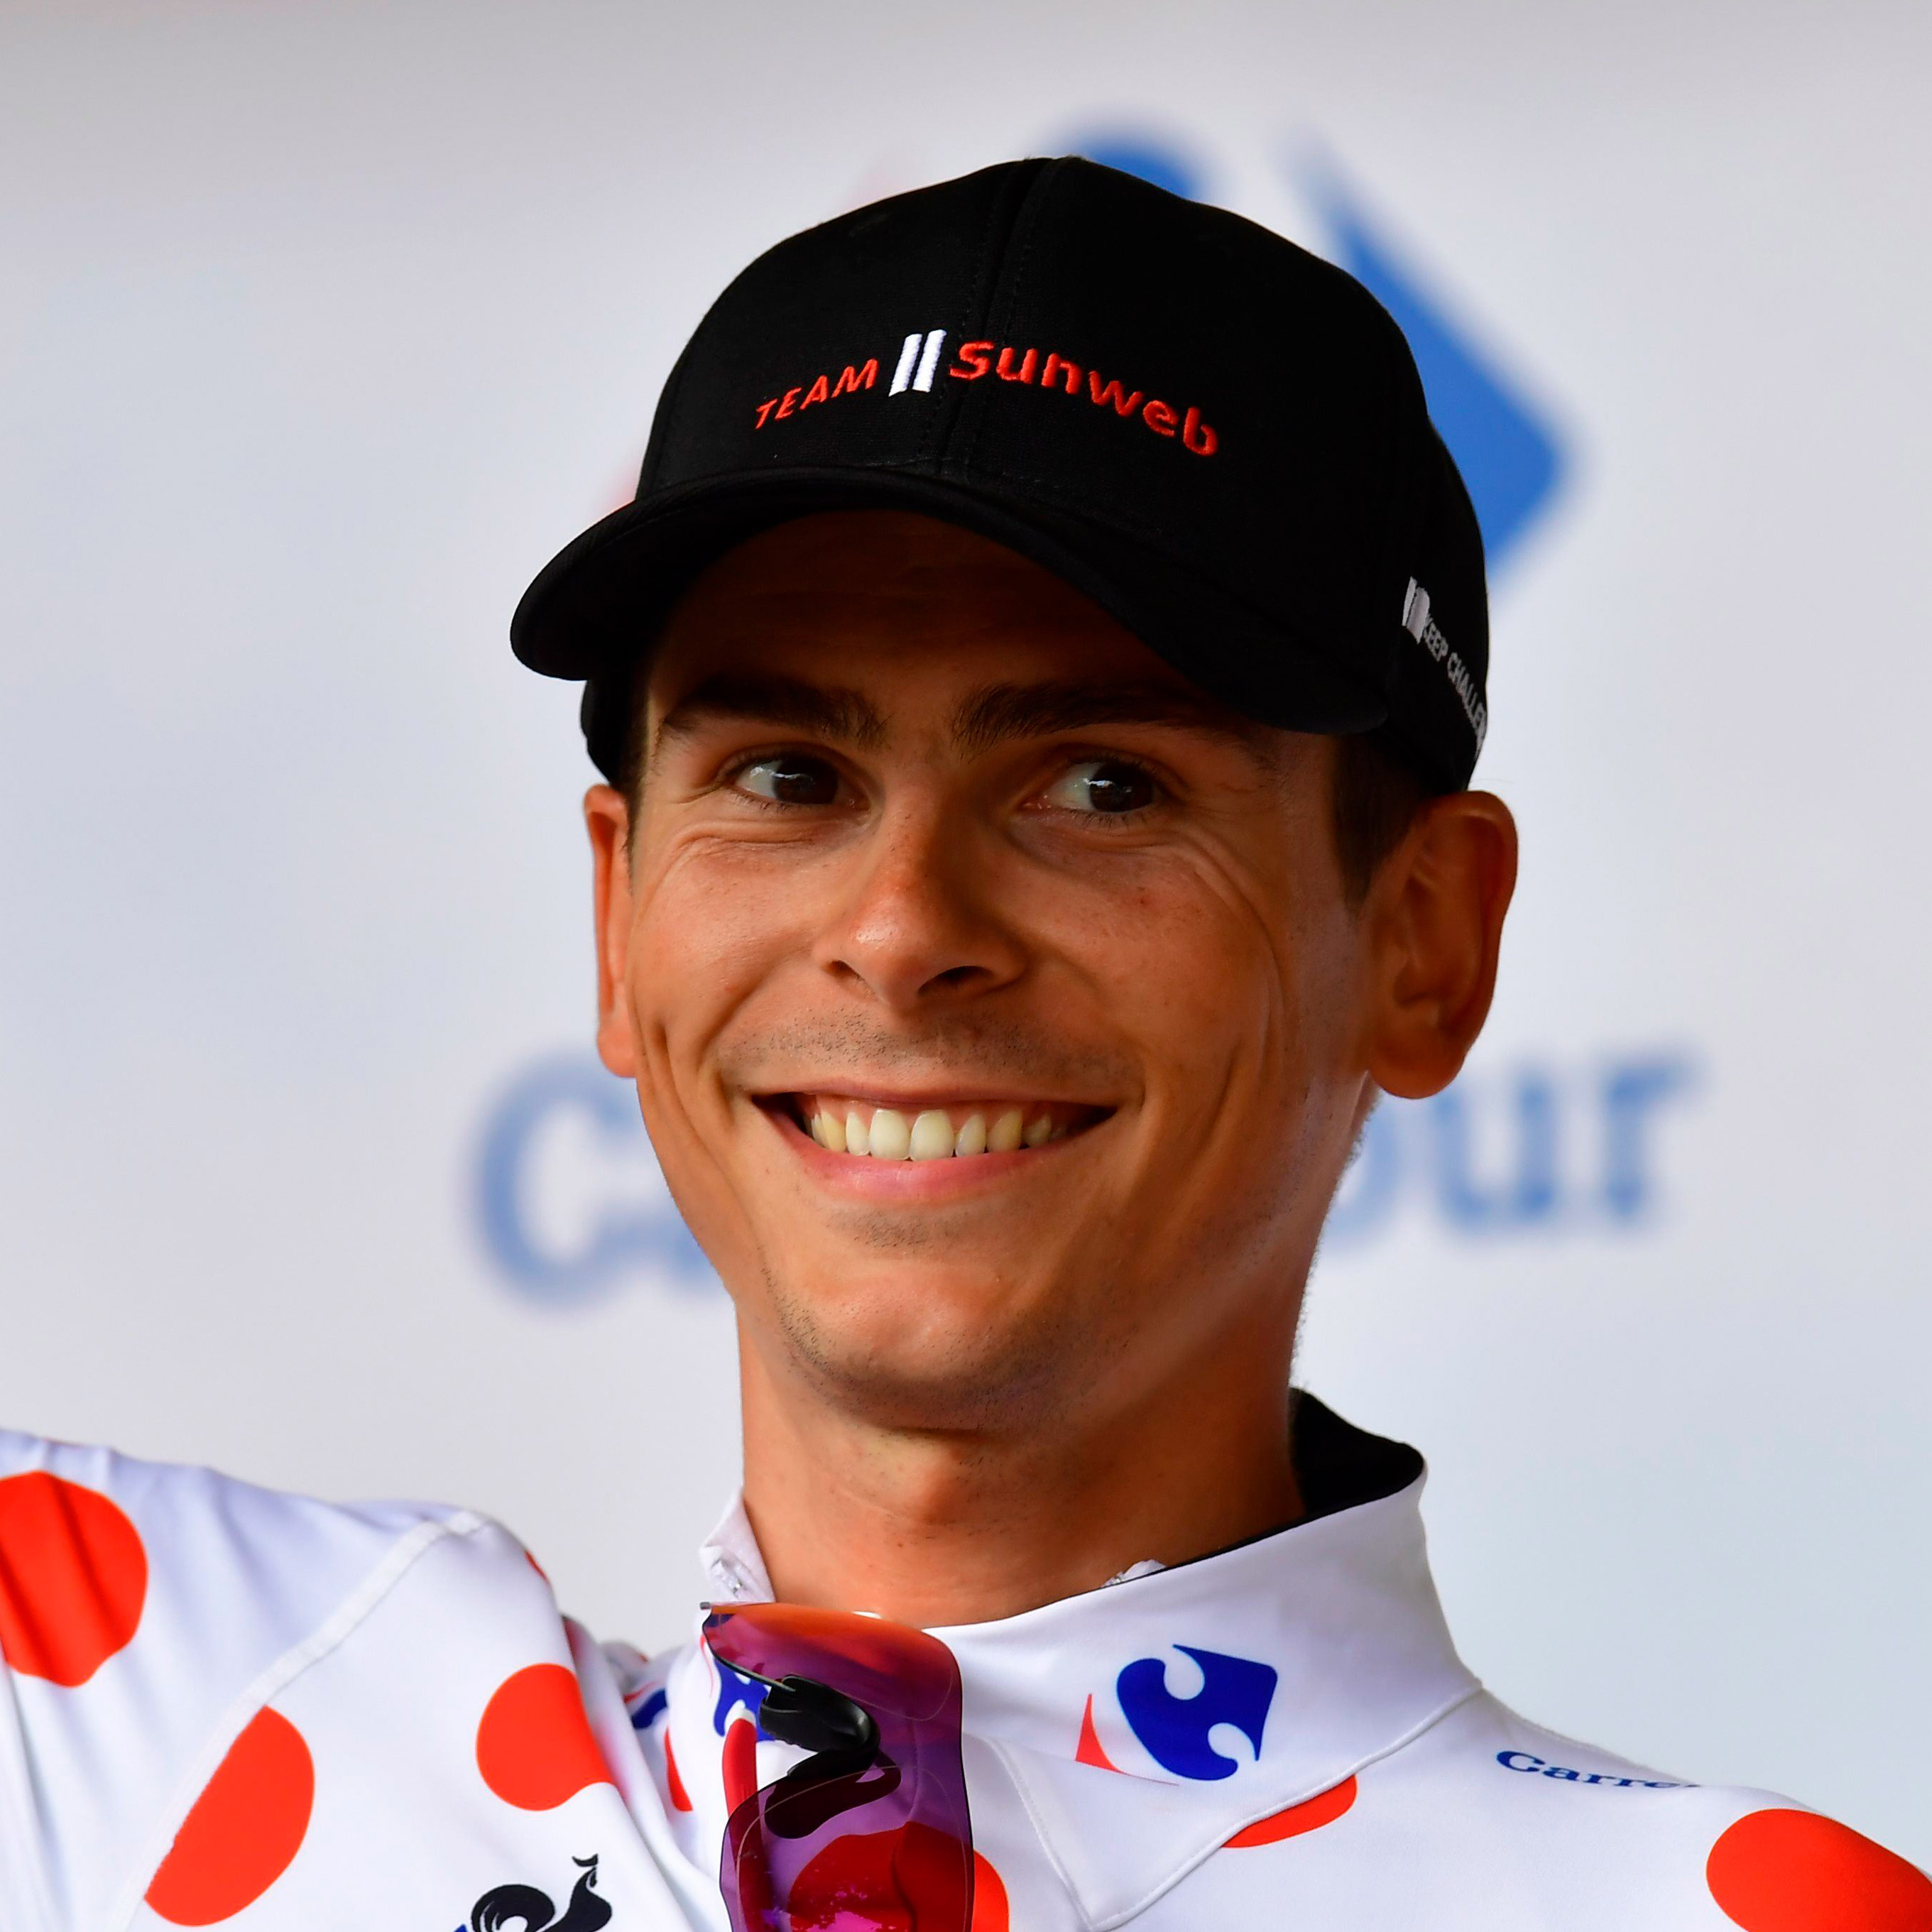 Warren Barguil